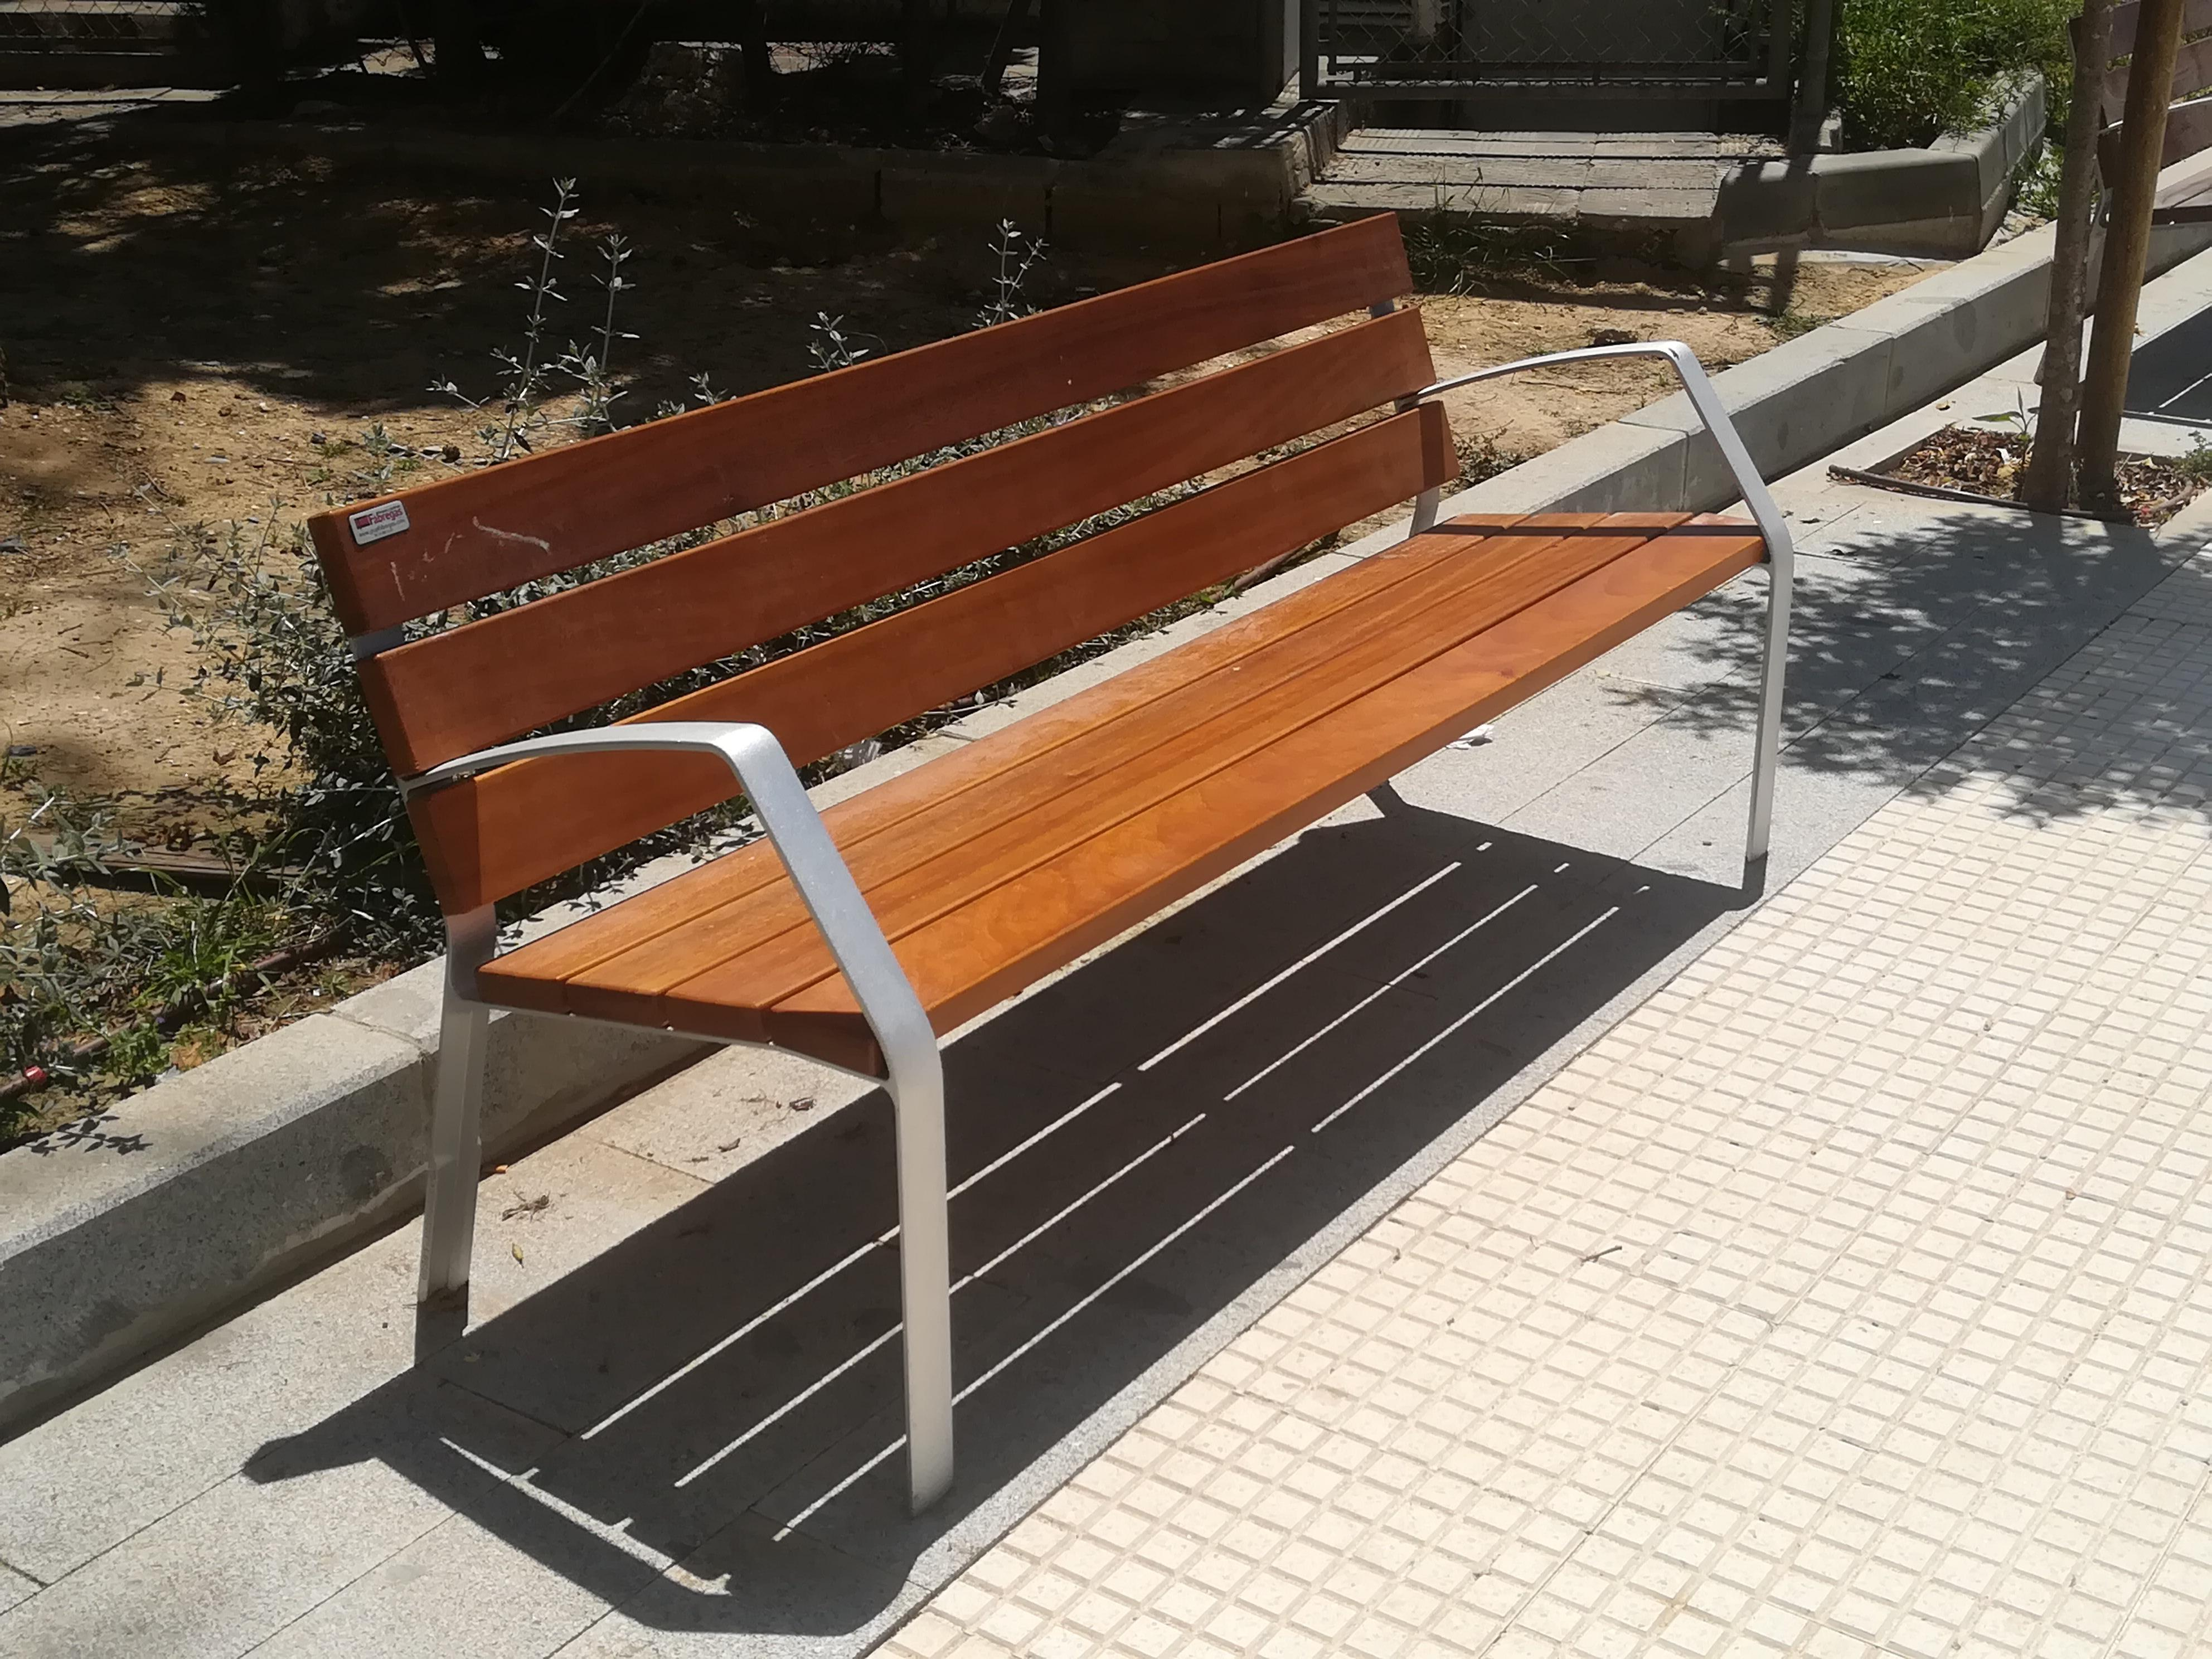 Fabregas Mobilier Urbain Manhole Covers And Urban Furniture In Huelva Spain 2018